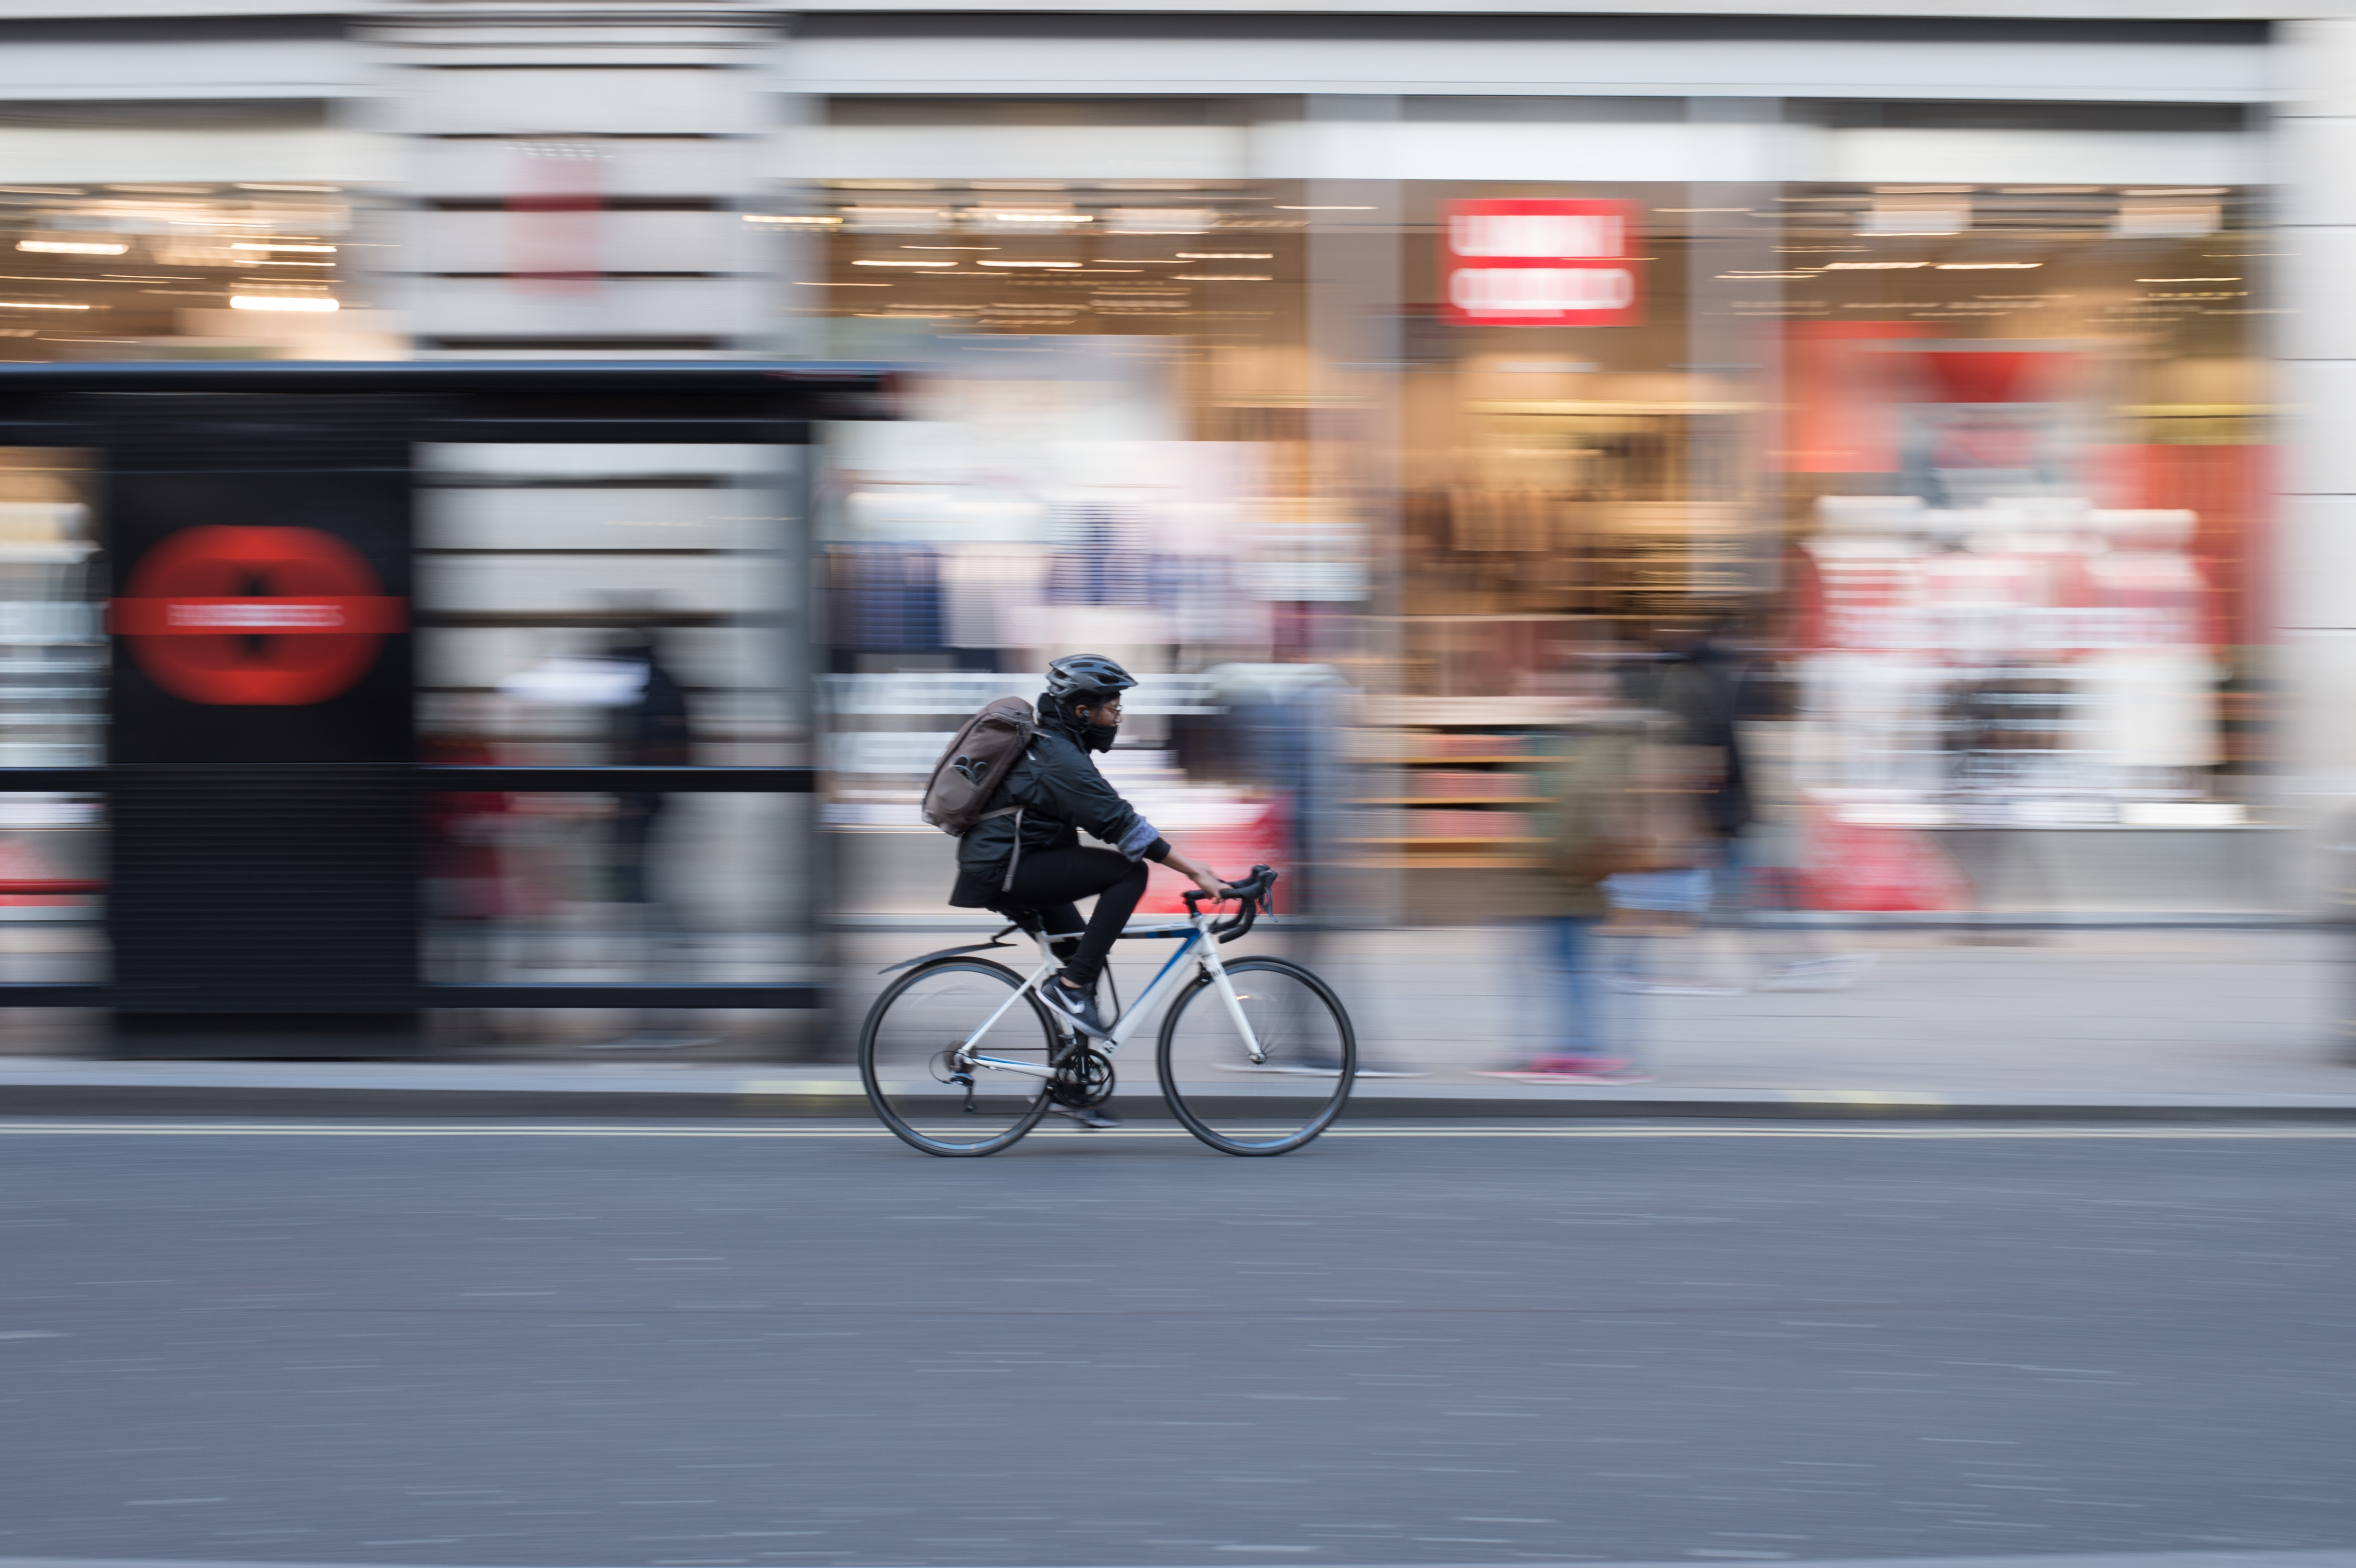 Decorative image of Person on bike cycling